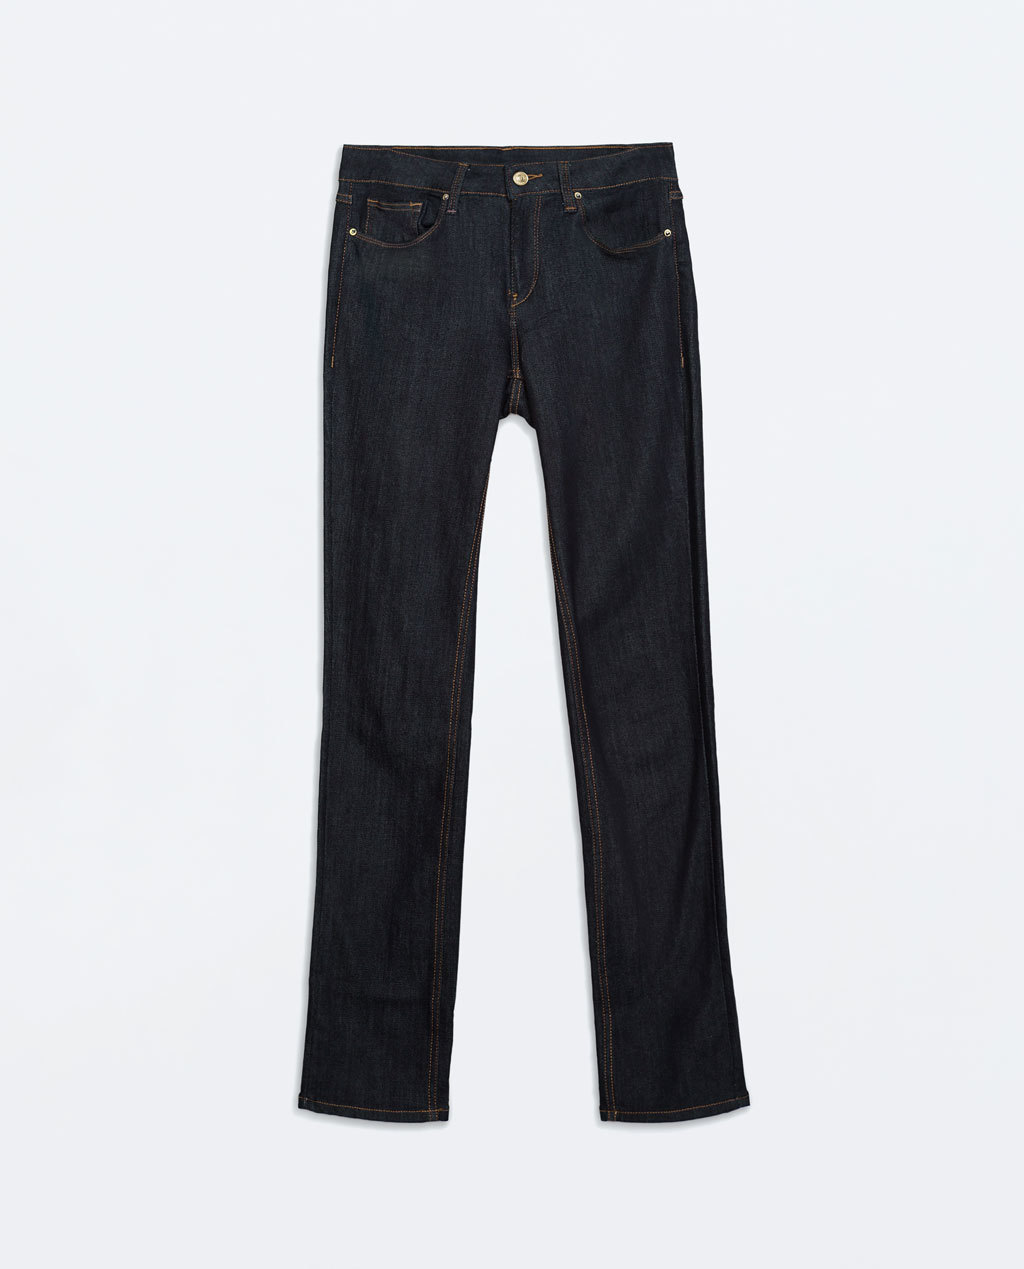 Straight Jeans With Washed Finish - style: straight leg; length: standard; pattern: plain; pocket detail: traditional 5 pocket; waist: mid/regular rise; predominant colour: navy; occasions: casual, creative work; fibres: cotton - stretch; jeans detail: dark wash; texture group: denim; pattern type: fabric; season: a/w 2014